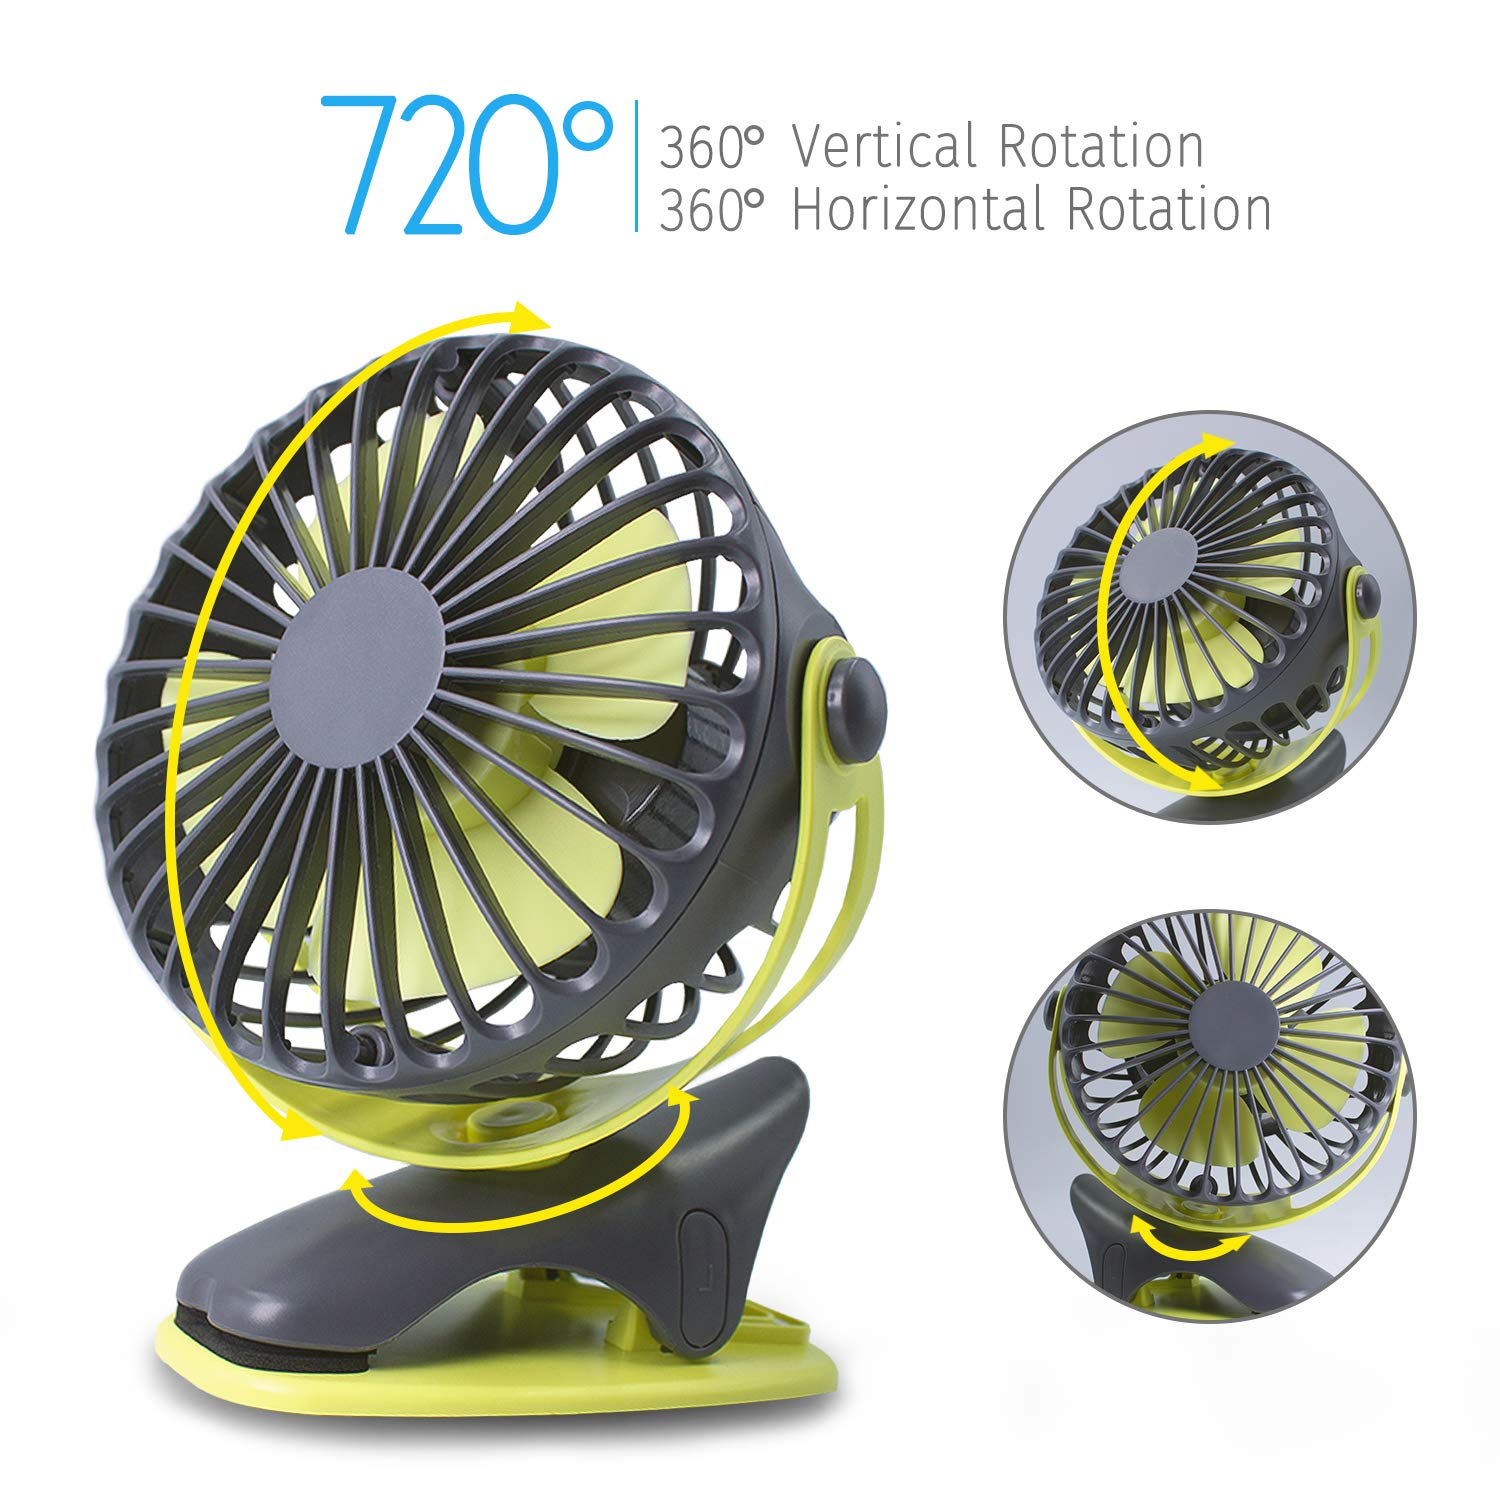 Treadmill, Car Seat Gym Green HALLO Gontar Clip-on Stroller Fan 4400 mAh Rechargeable Lithium Battery /& USB Cable 360/°Rotation Adjustable Speed-Operated Accessory for Baby Travel